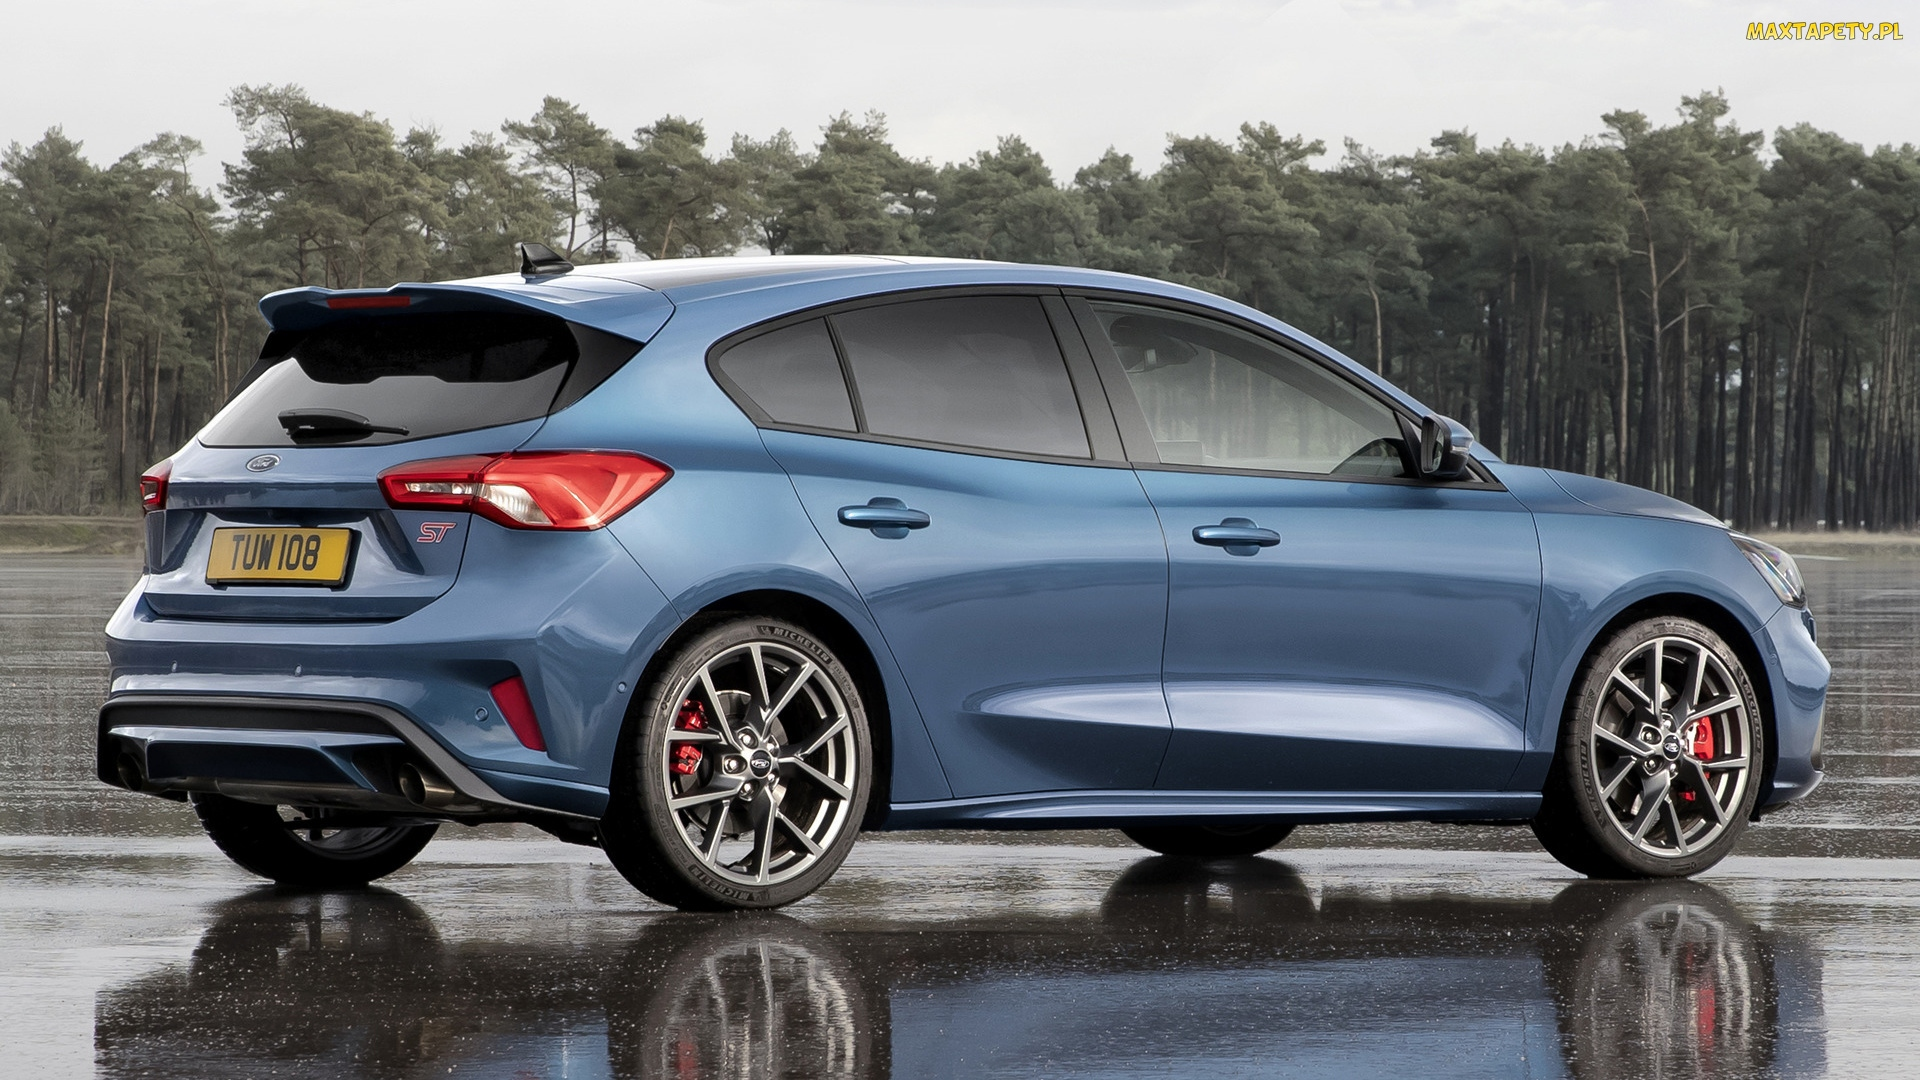 2019, Ford Focus ST